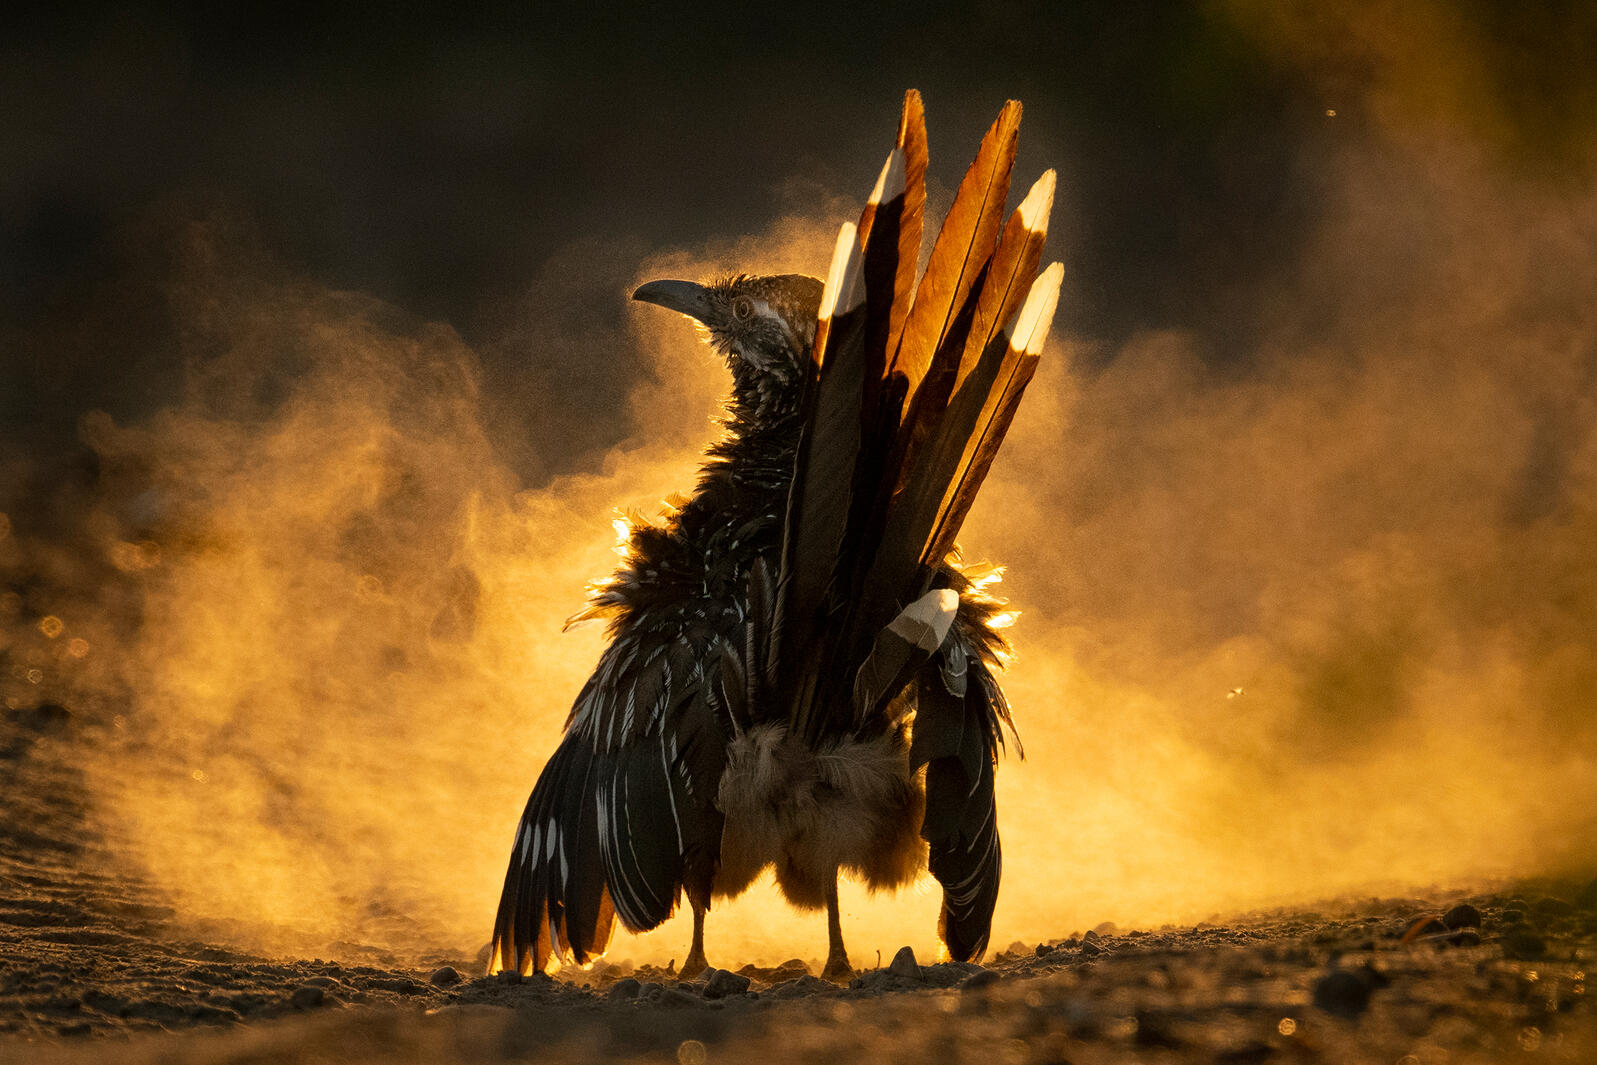 In the midst of an evening dust bath, a Greater Roadrunner stands proudly, backlit by the sun. Brilliant, golden light exposes white-tipped tail feathers that contrast with downy feathers fanning out from its sides. Dust from a recent roll in the dirt lingers in the air.